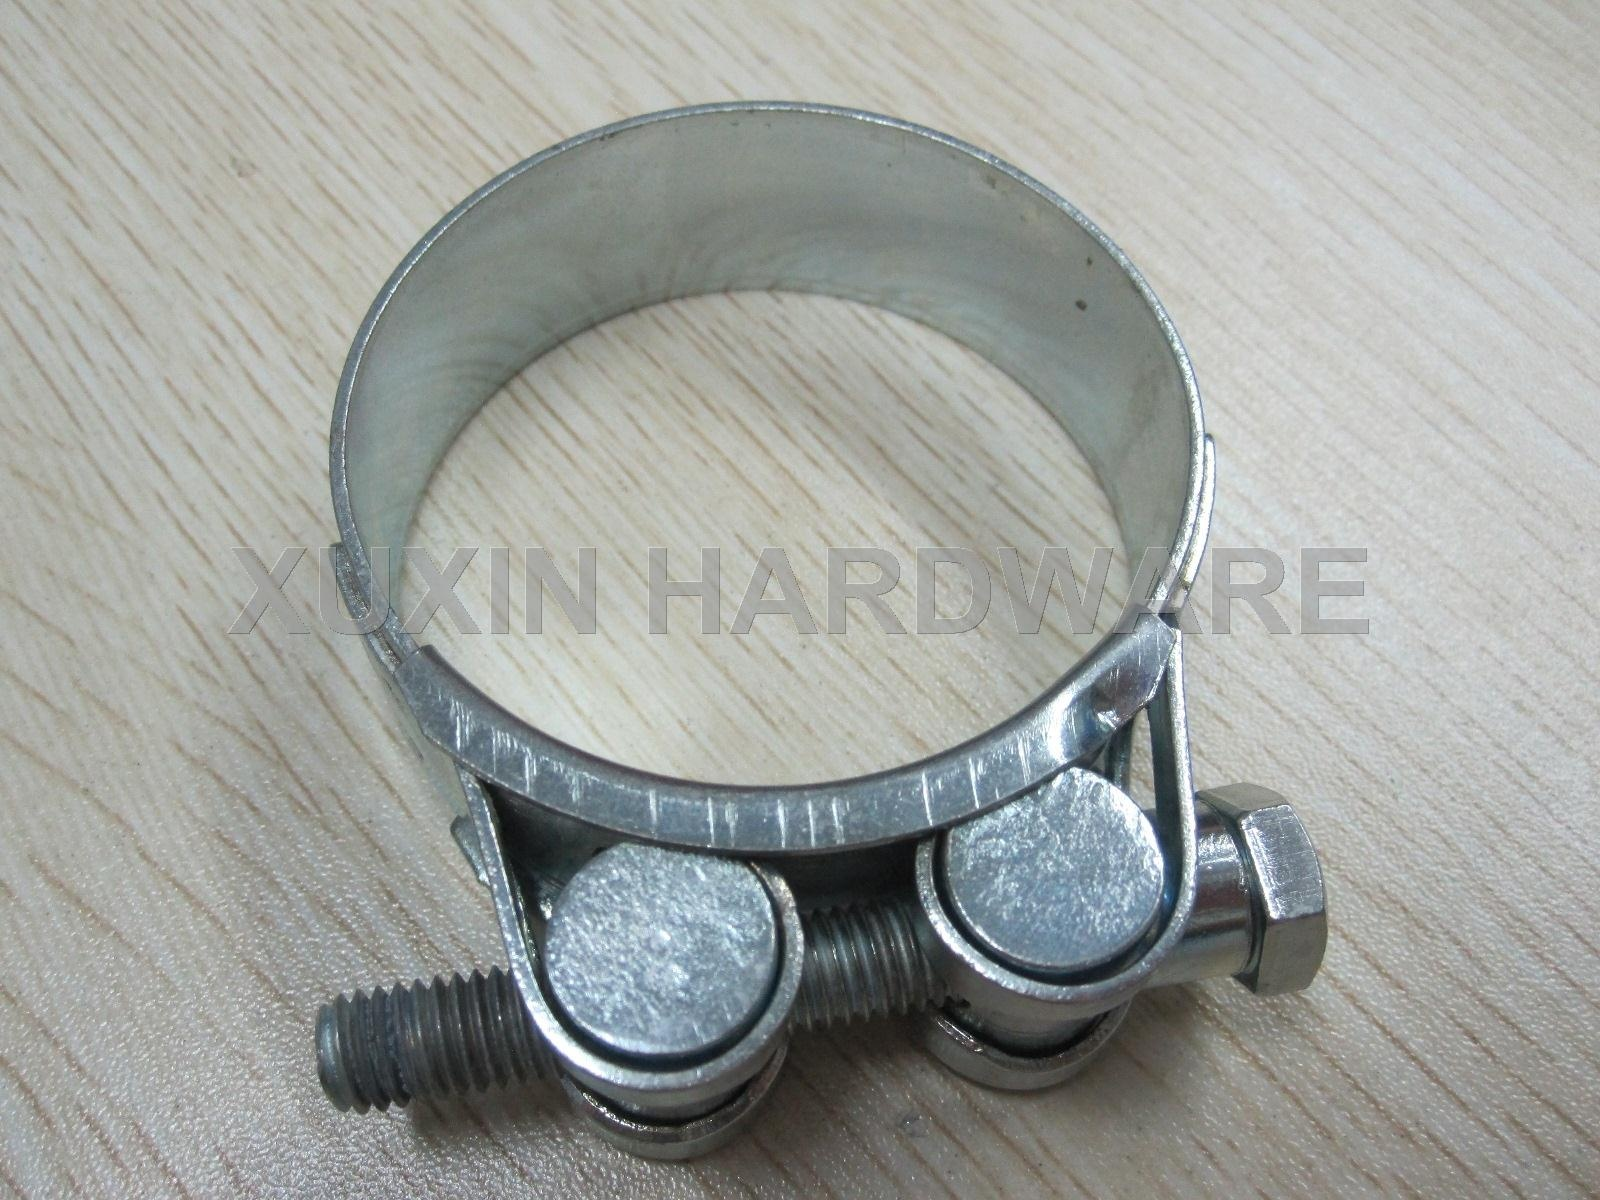 Unitary solid nut heavy duty hose clamp